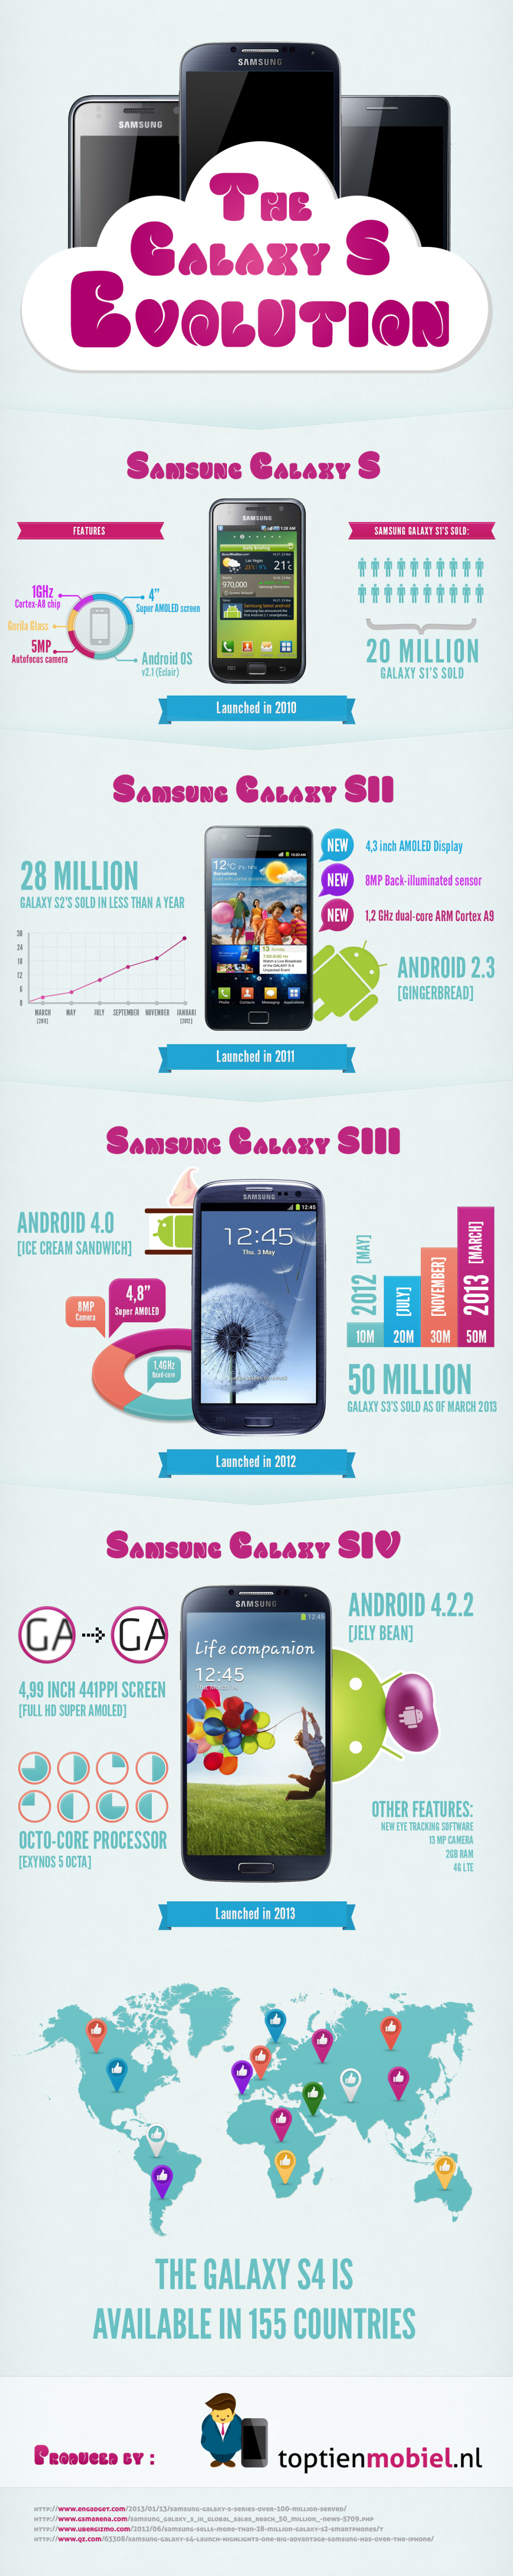 samsung-galaxy-s-infographic